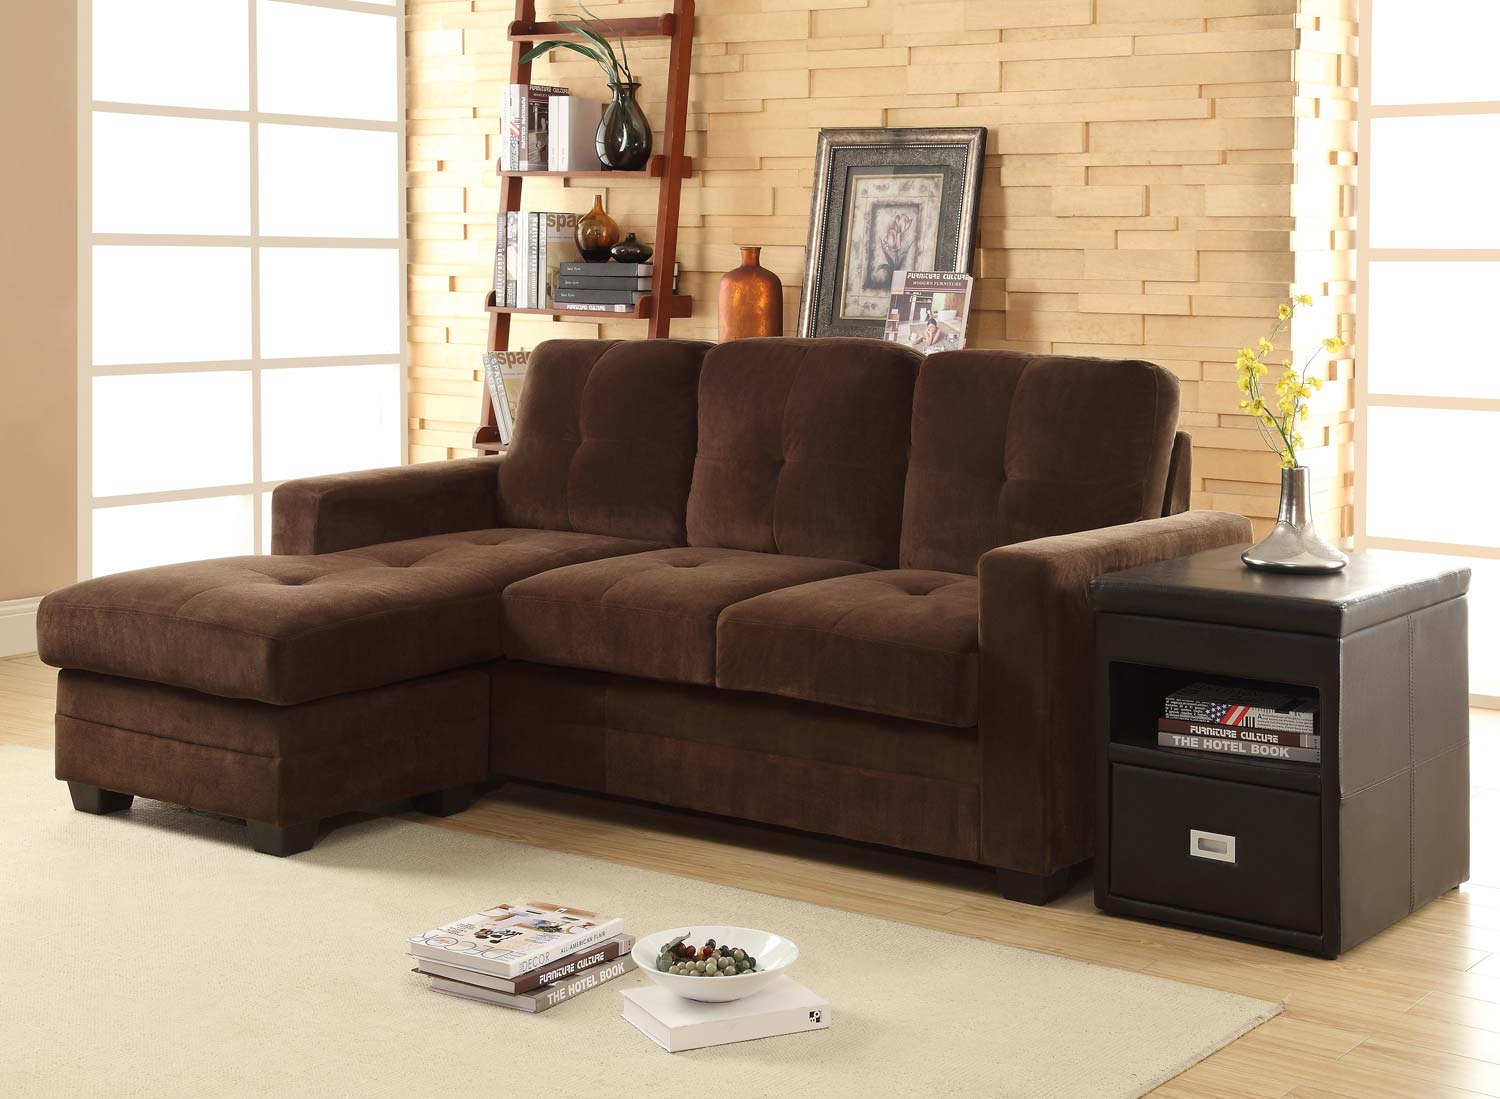 Homelegance Phelps Sectional Sofa - Coffee - Microfiber